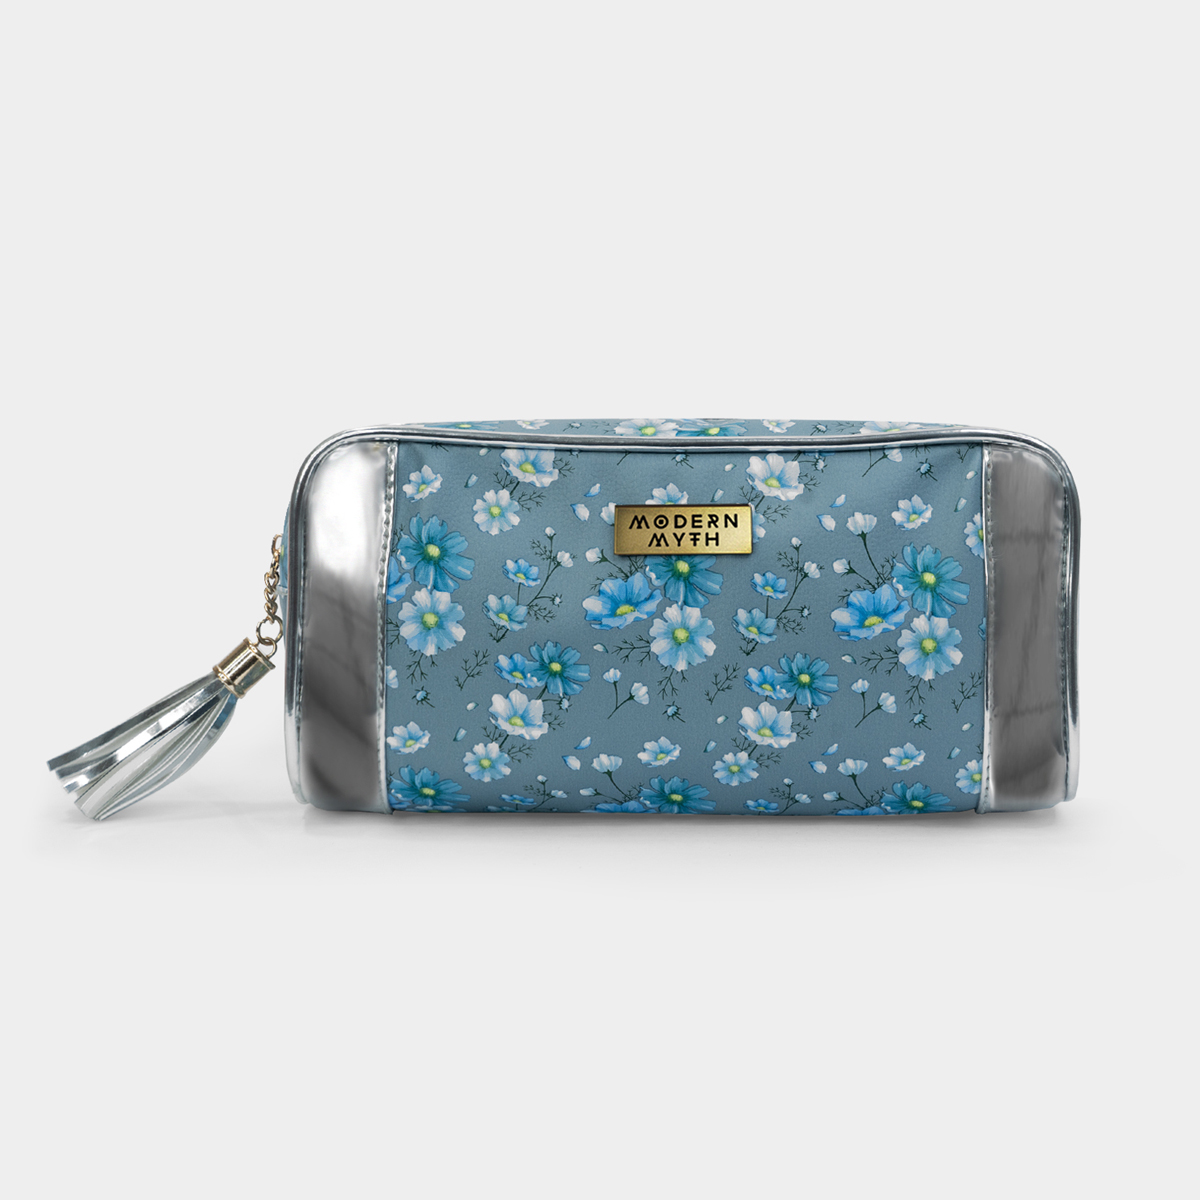 Modern Myth   Floral Story Silver Multi-Purpose Makeup Pouch